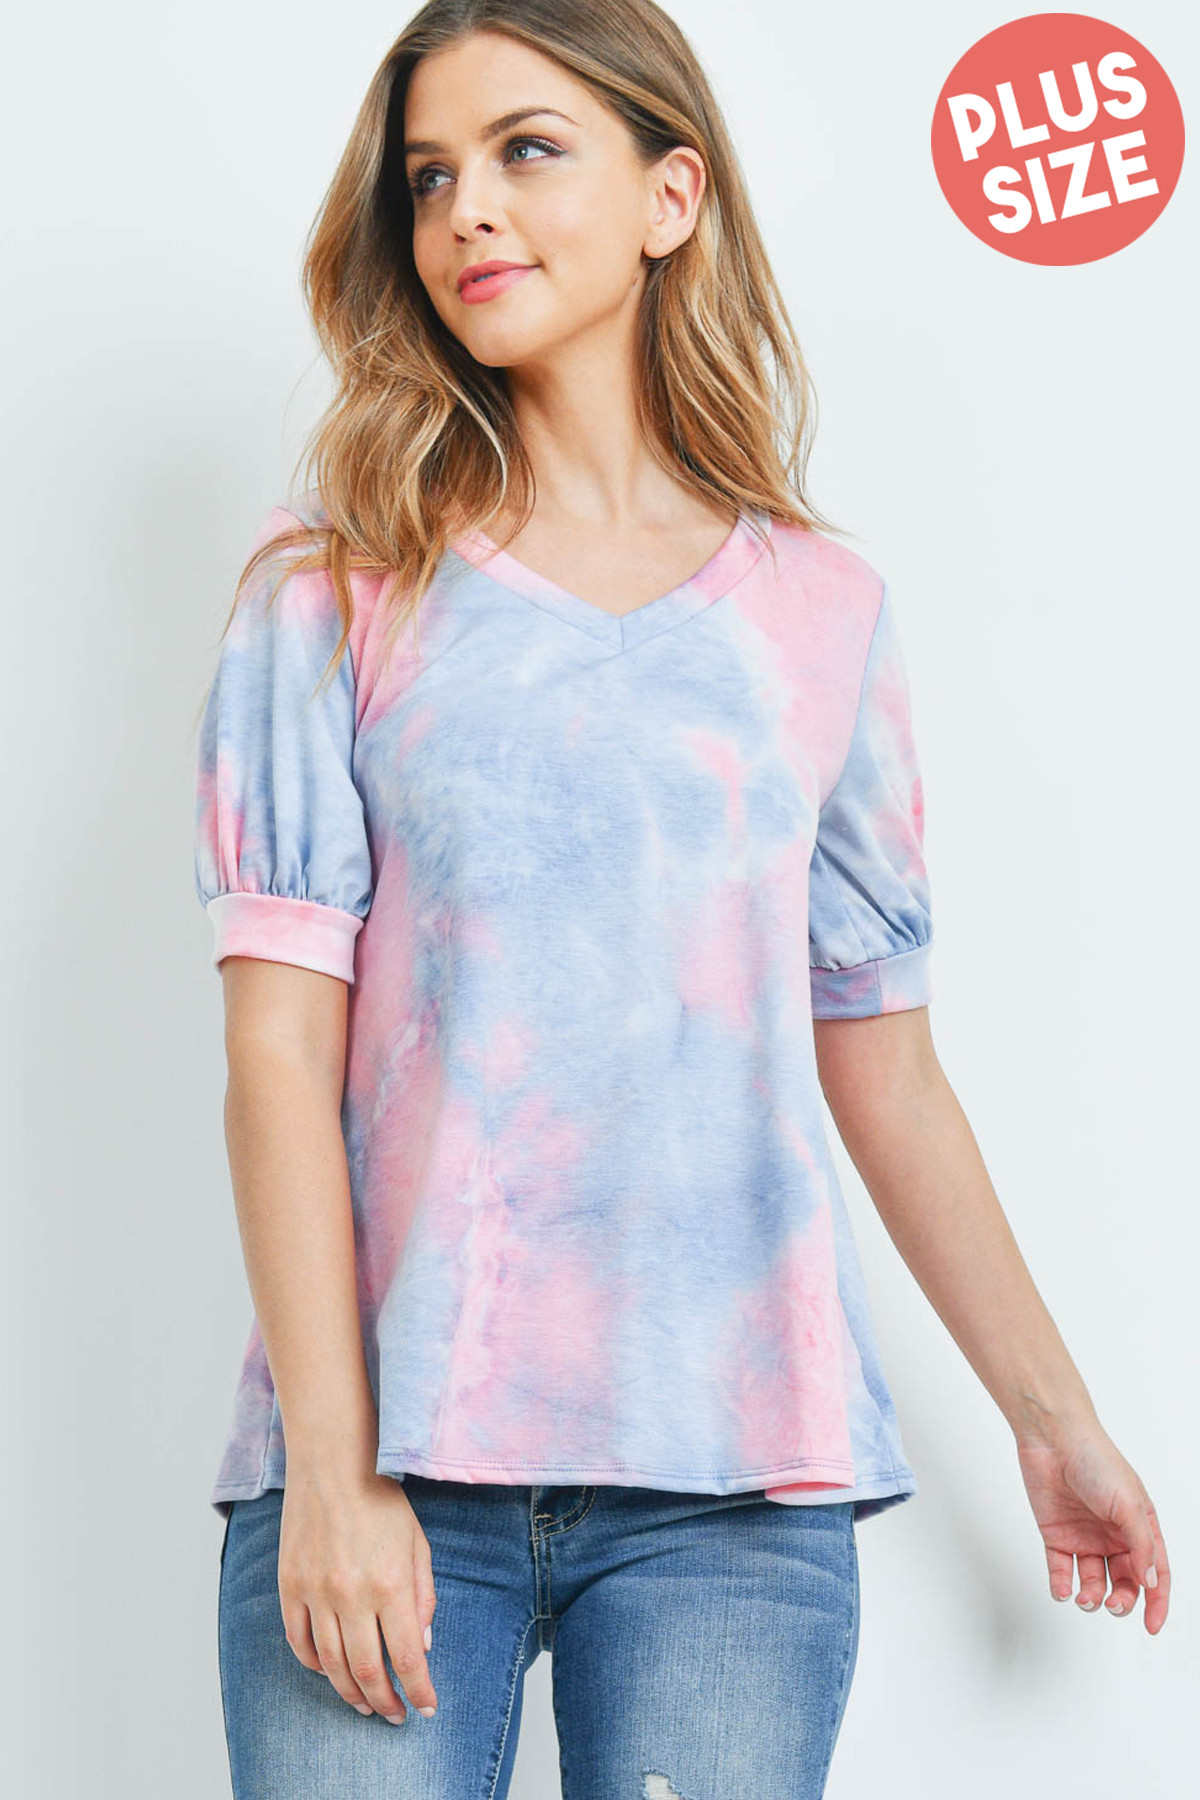 S12-12-3-PPT2182X-PKDNM - PUFF SLEEVES V-NECK TIE DYE PLUS SIZE TOP- PINK/DENIM 3-2-1